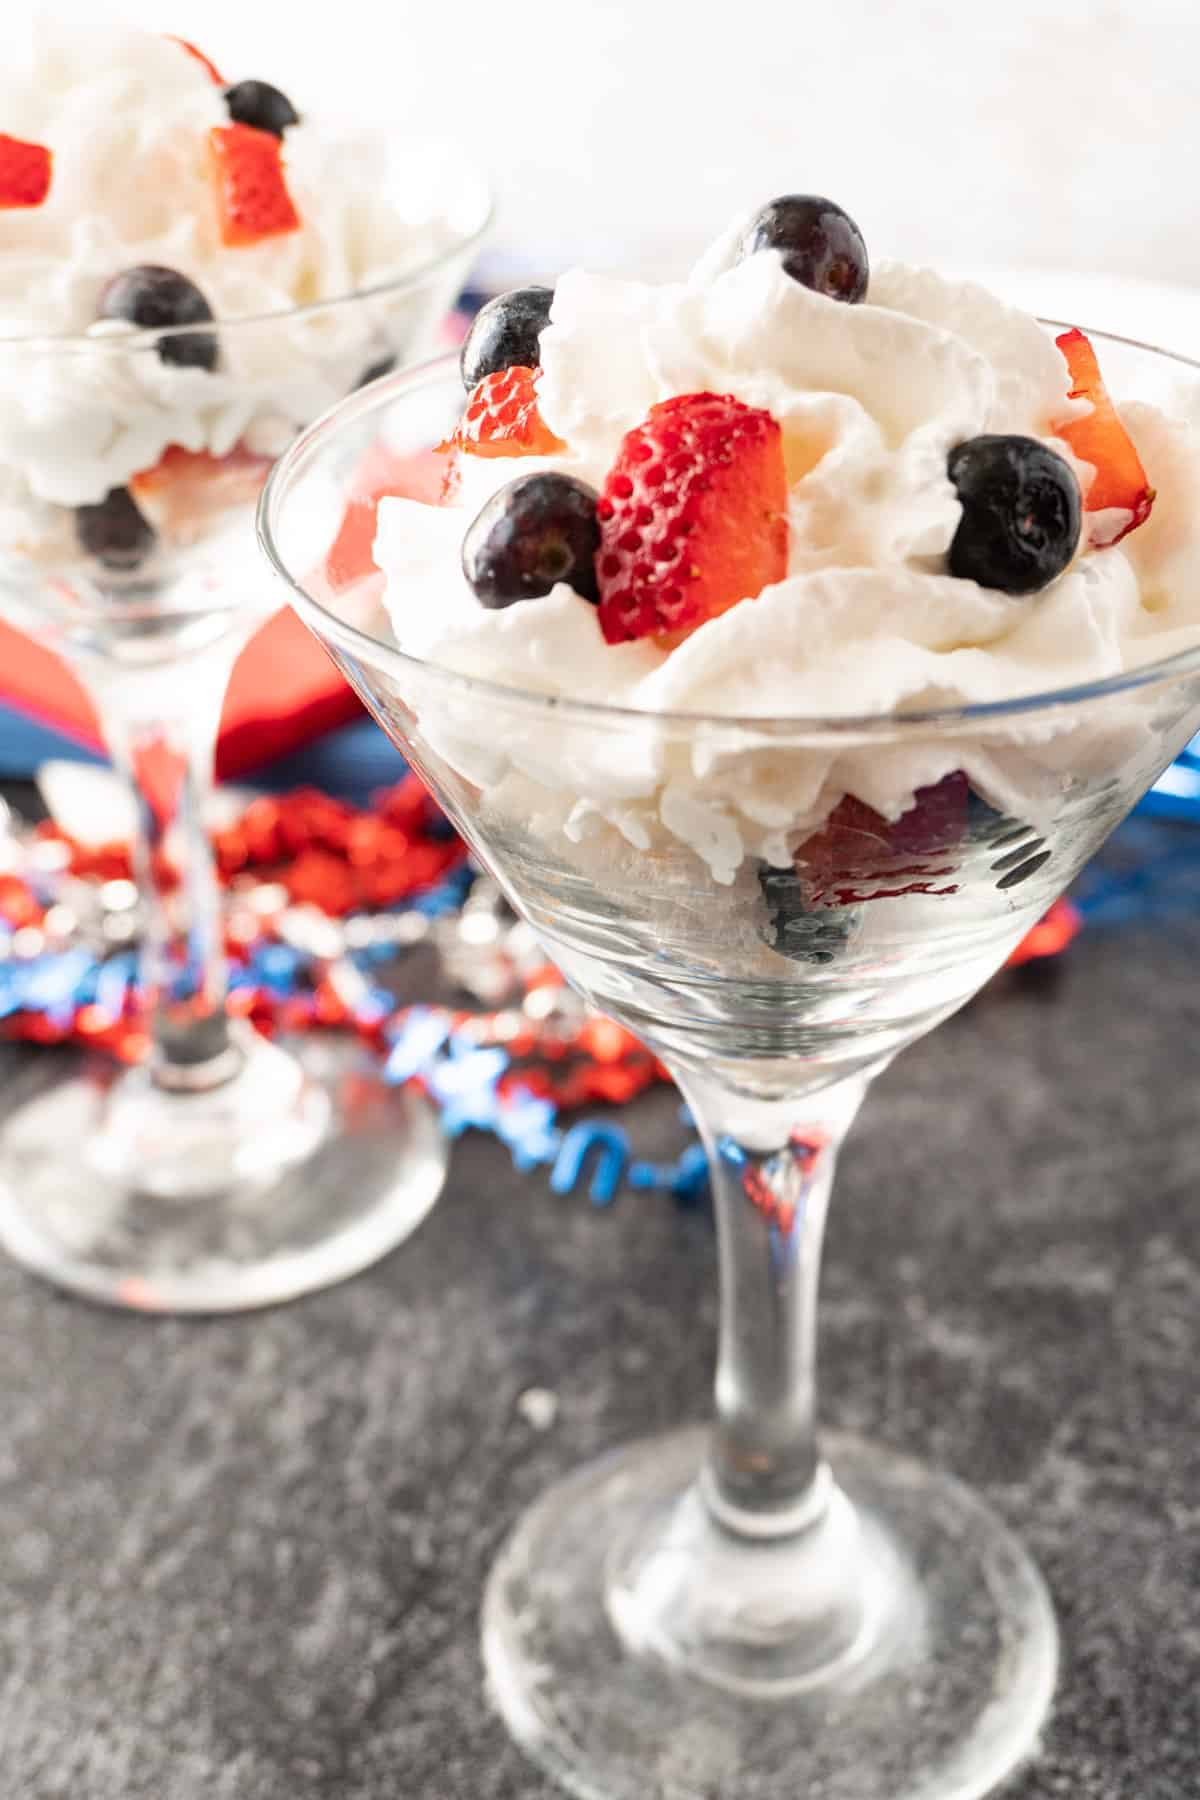 angel food cake, whipped cream, and berries in martini glass